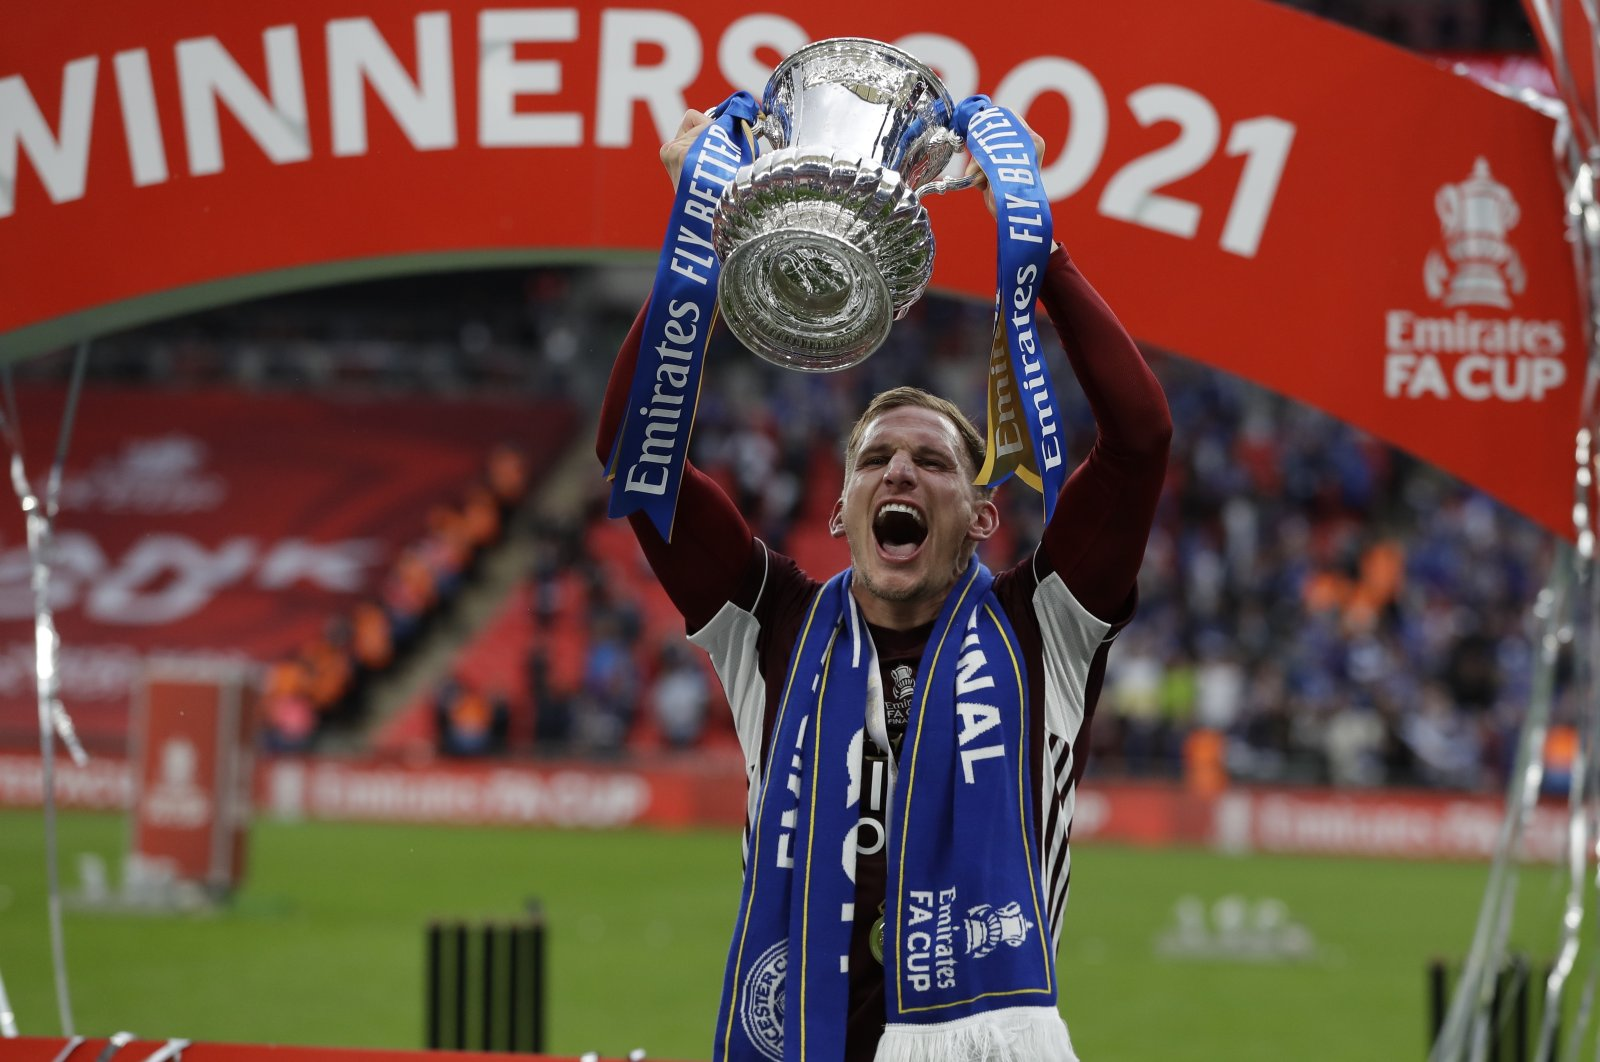 Leicester's Marc Albrighton celebrates with the trophy after winning the English FA Cup final between Chelsea FC and Leicester City at the Wembley Stadium in London, Britain, May 15, 2021. (EPA Photo)